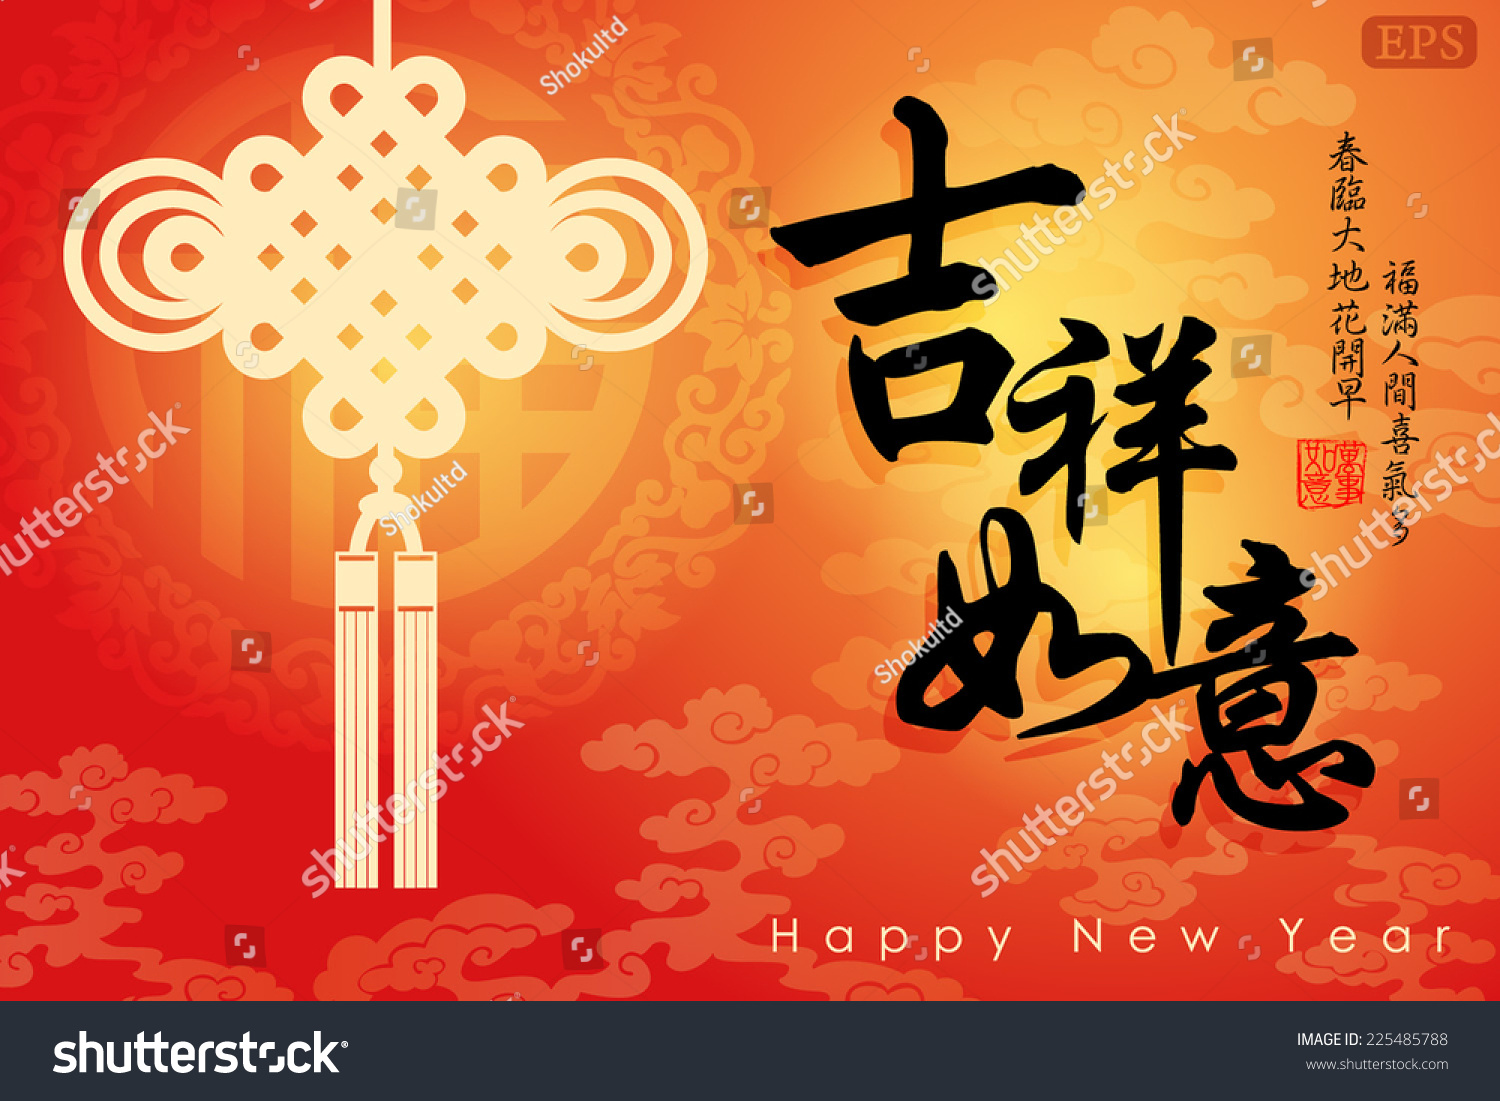 Chinese new year greeting card design translation stock vector chinese new year greeting card designanslation all the best anslation of small m4hsunfo